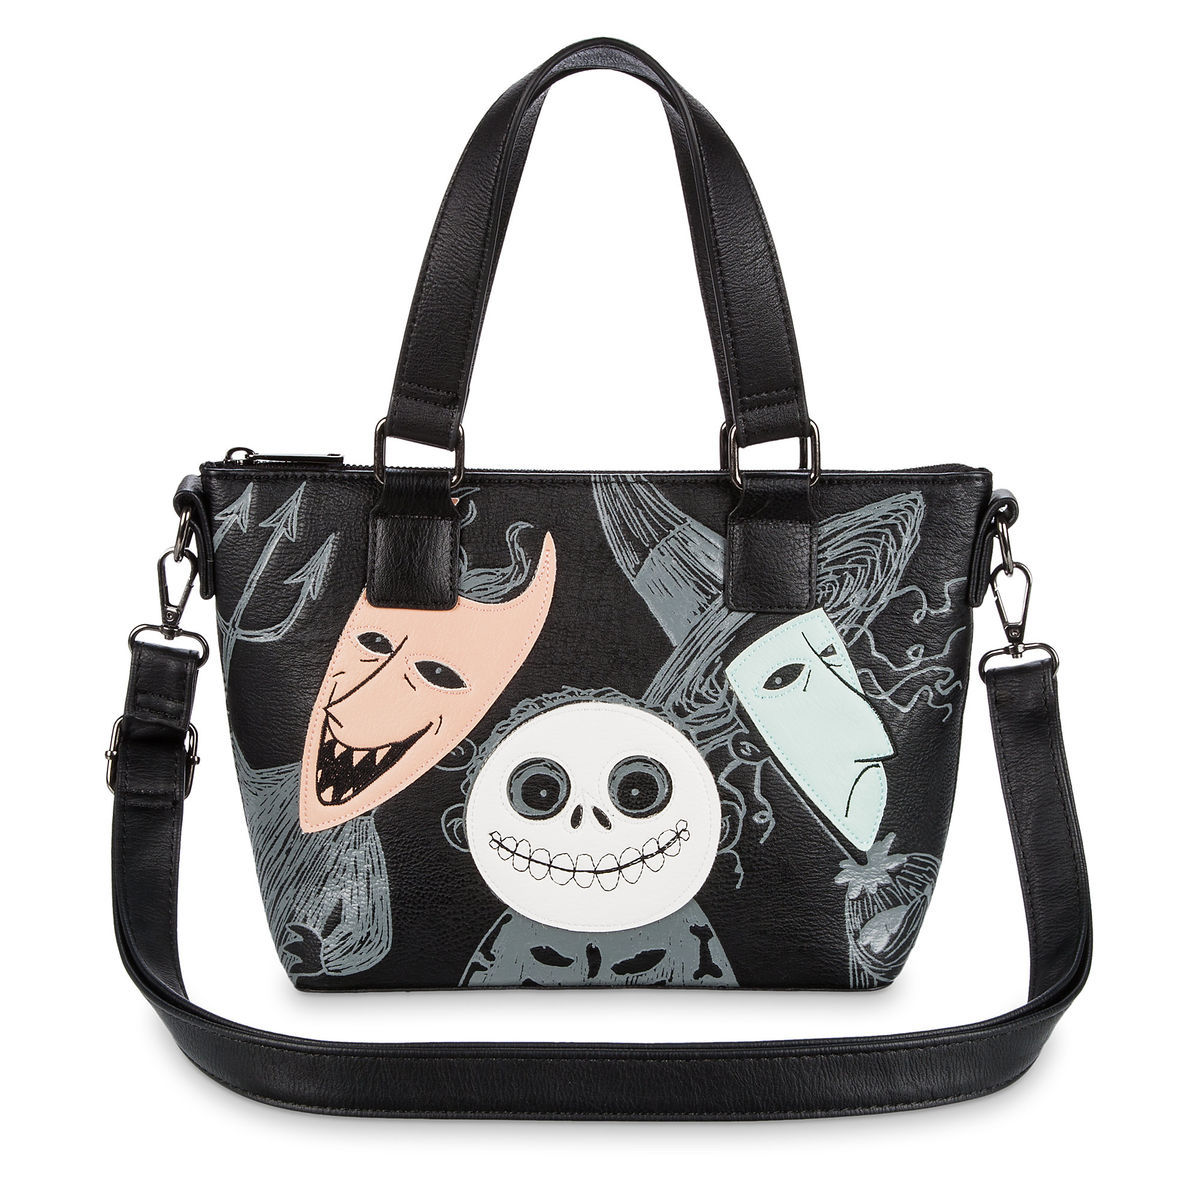 Product Image Of Lock Shock And Barrel Fashion Bag 1